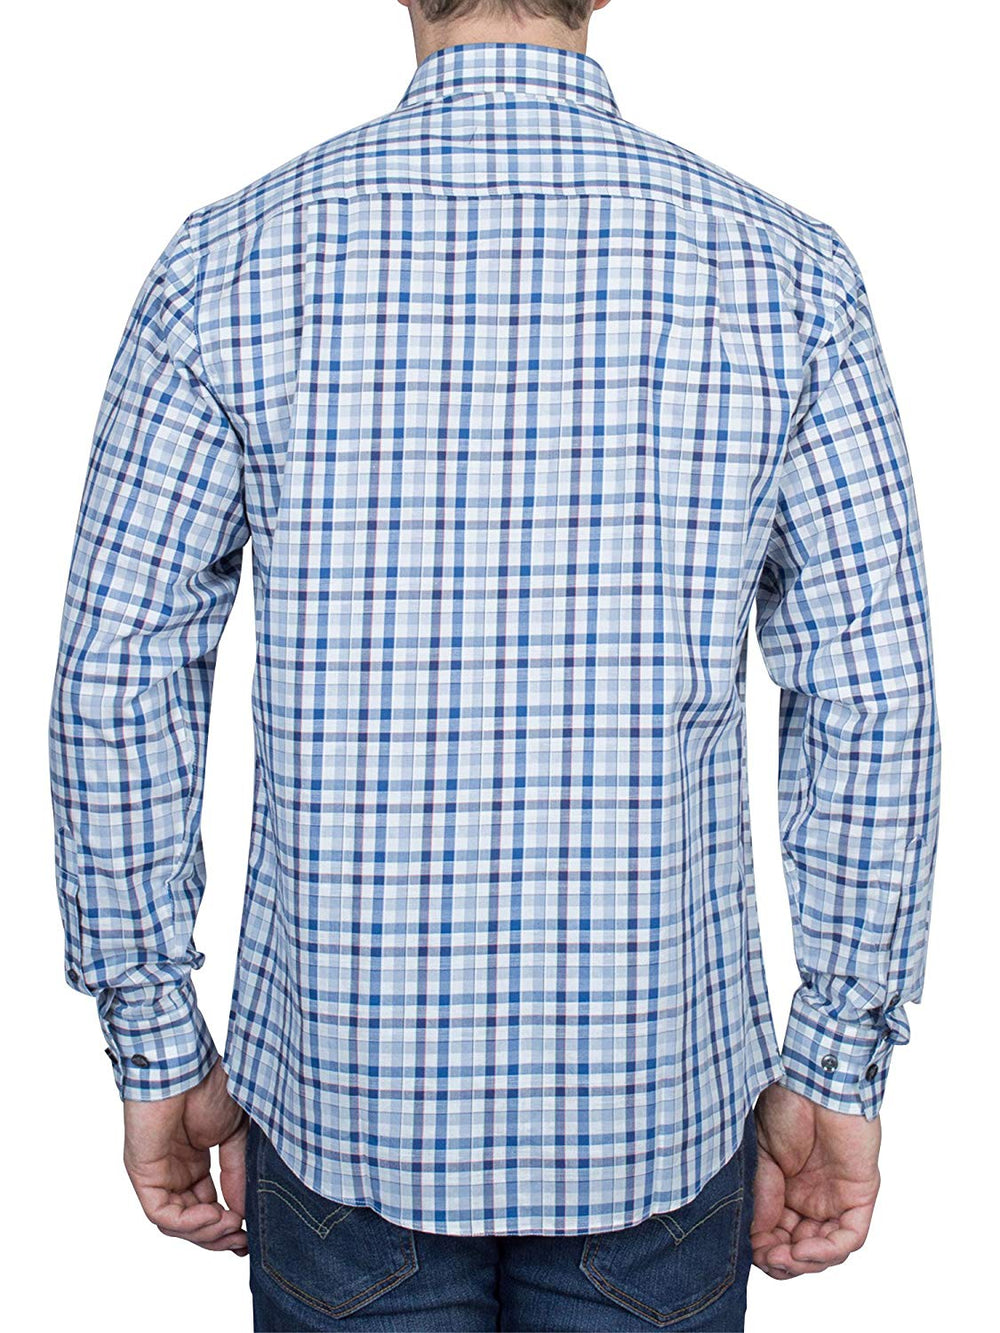 Thaddeus FRANKLIN Mens Long Sleeve Plaid Cotton Linen Blend Button Down Shirt, Navy and Blues